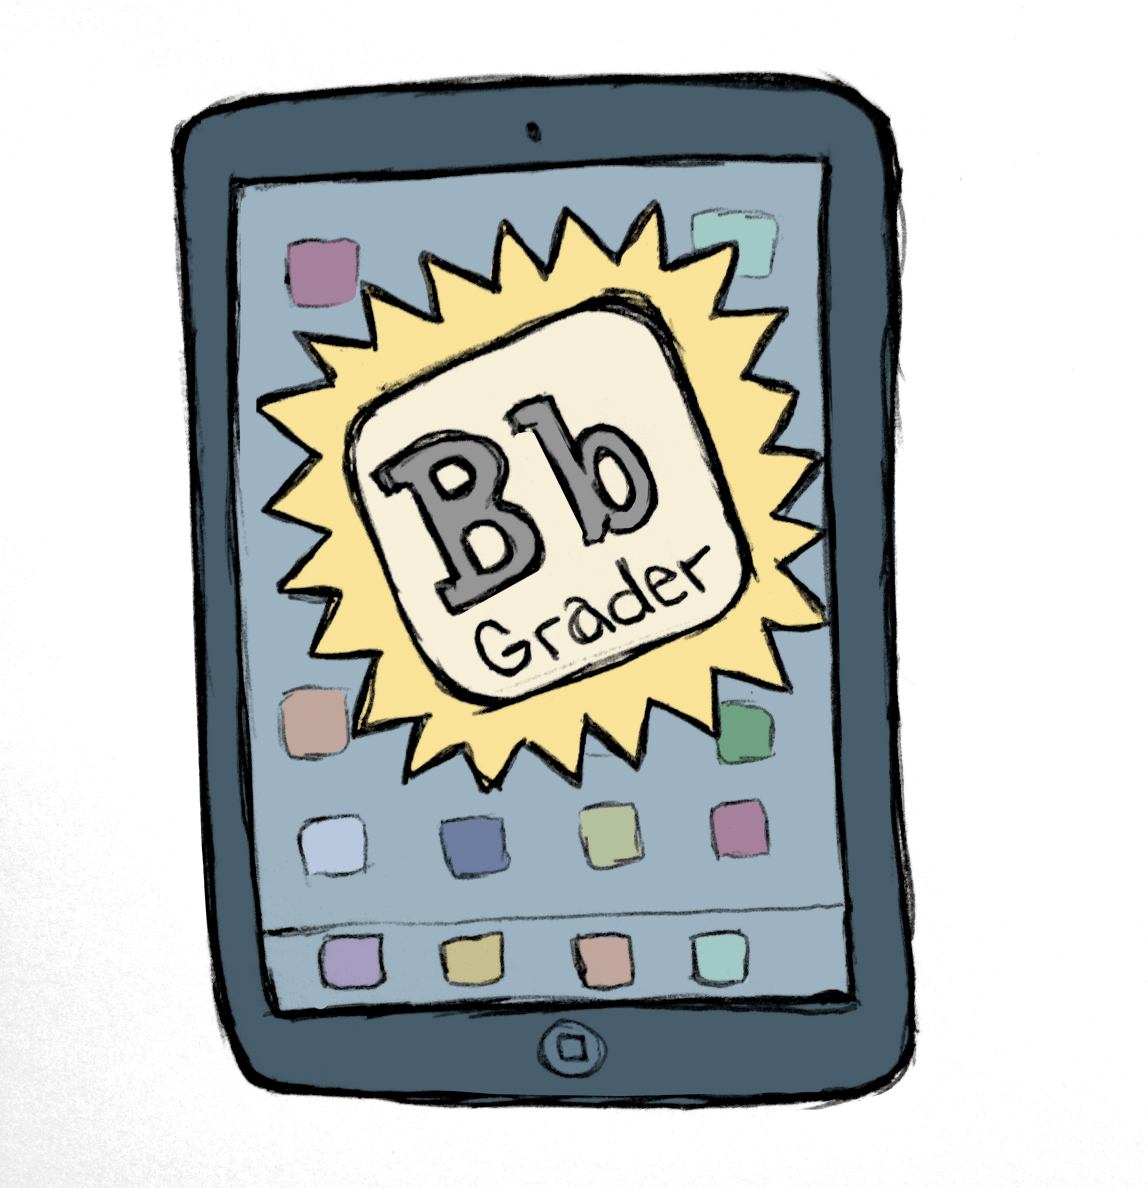 Introducing the new myWPI BB Grader App for iPad